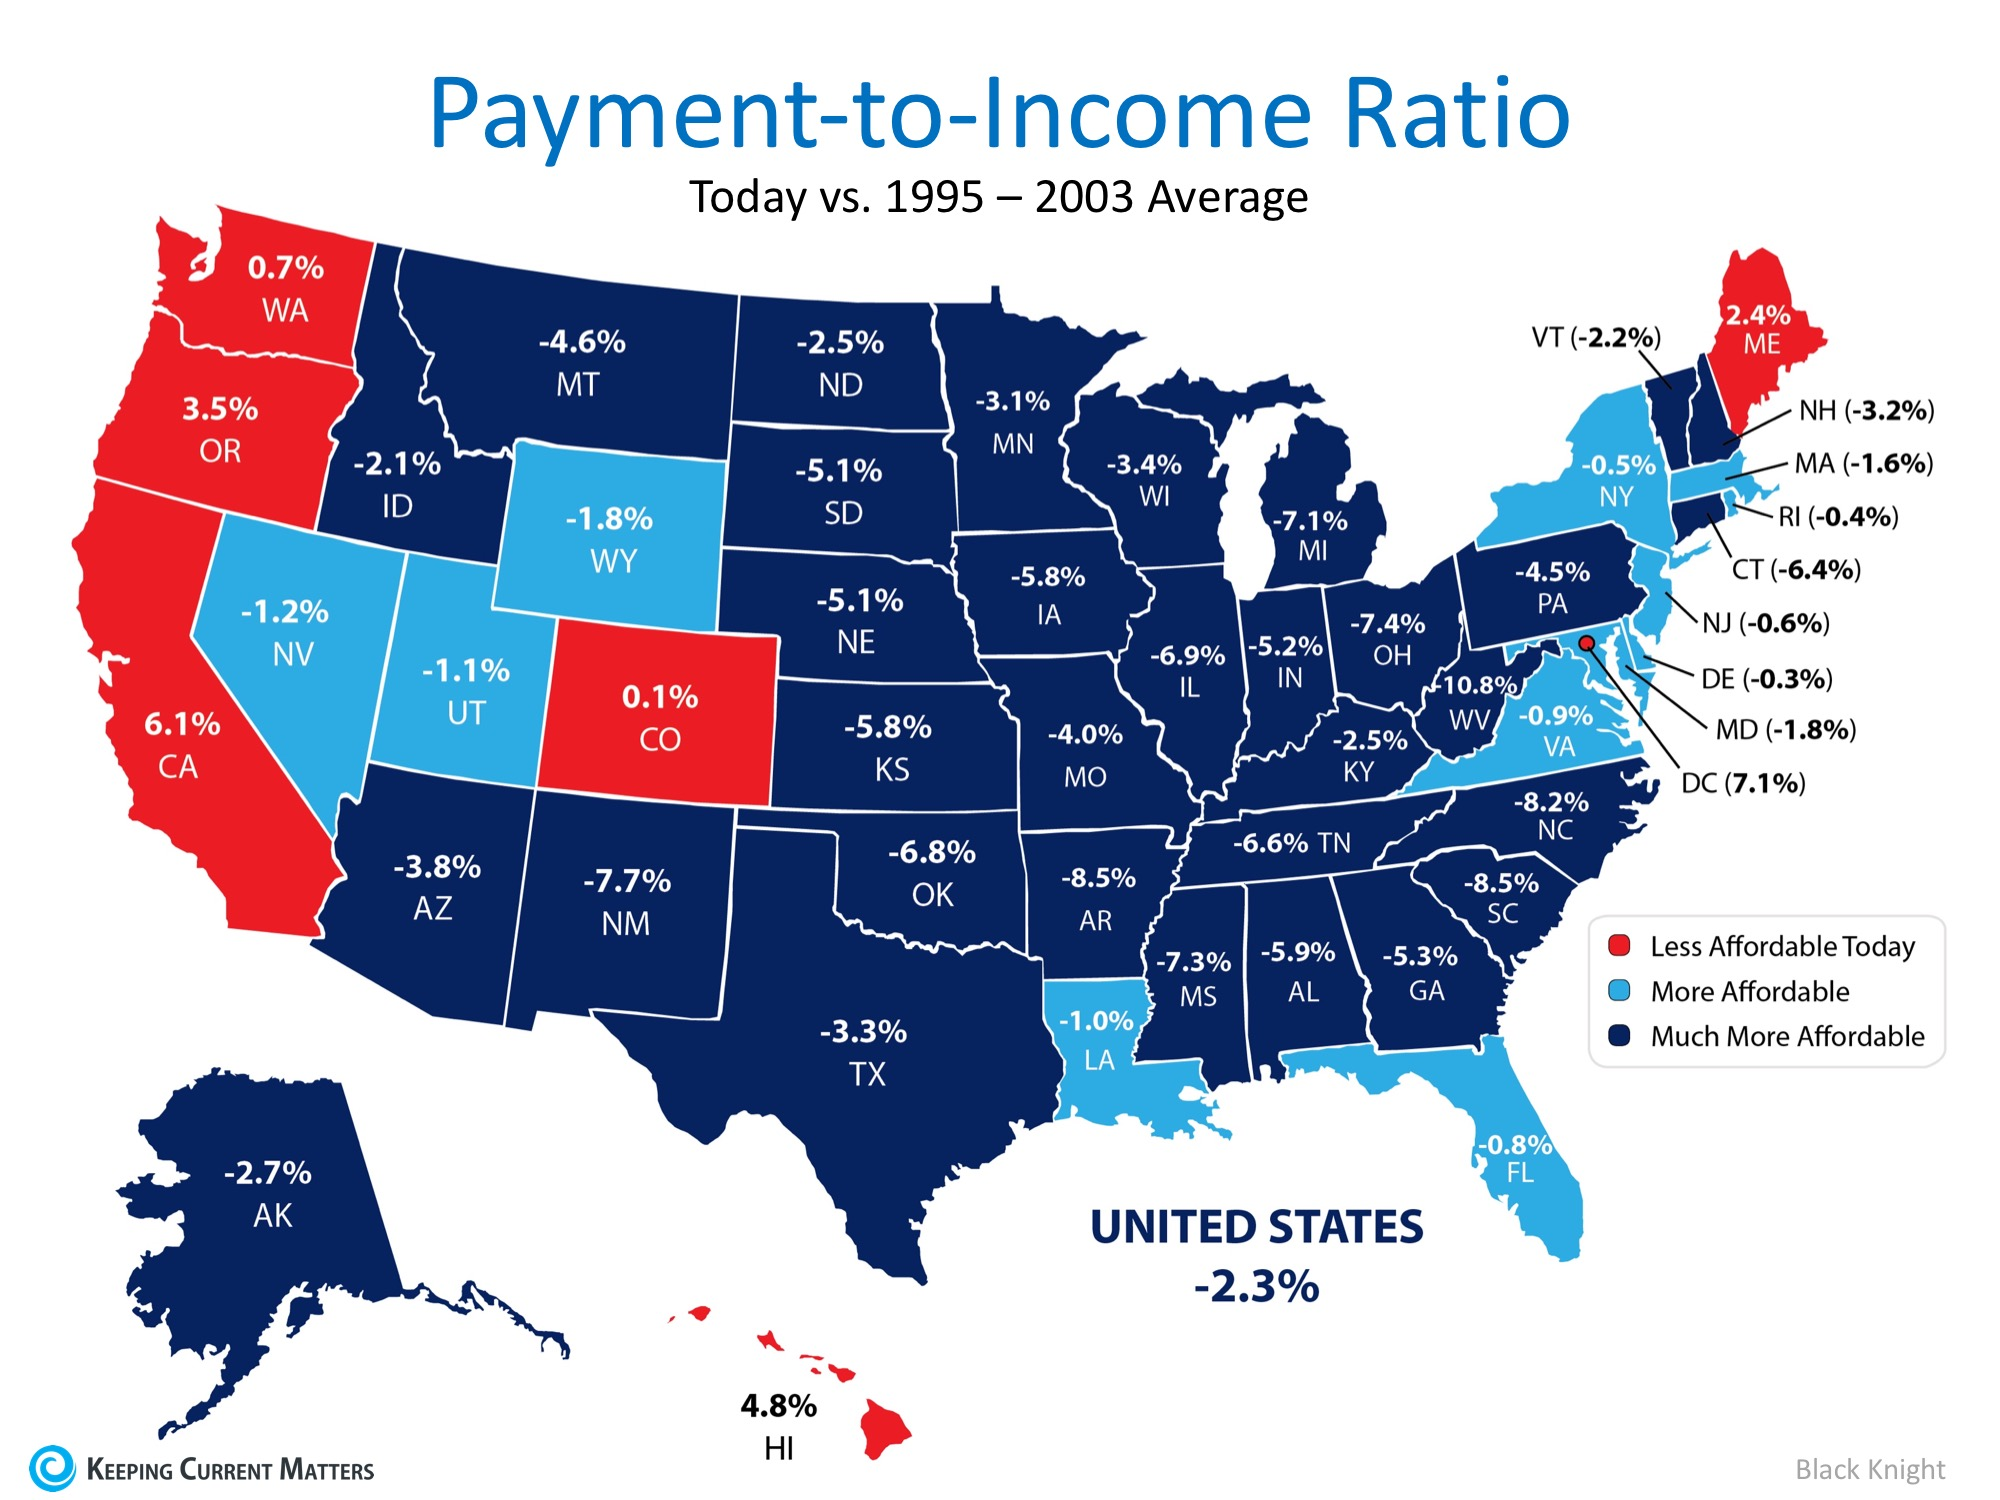 Homes are More Affordable in 44 out of 50 States | Keeping Current Matters